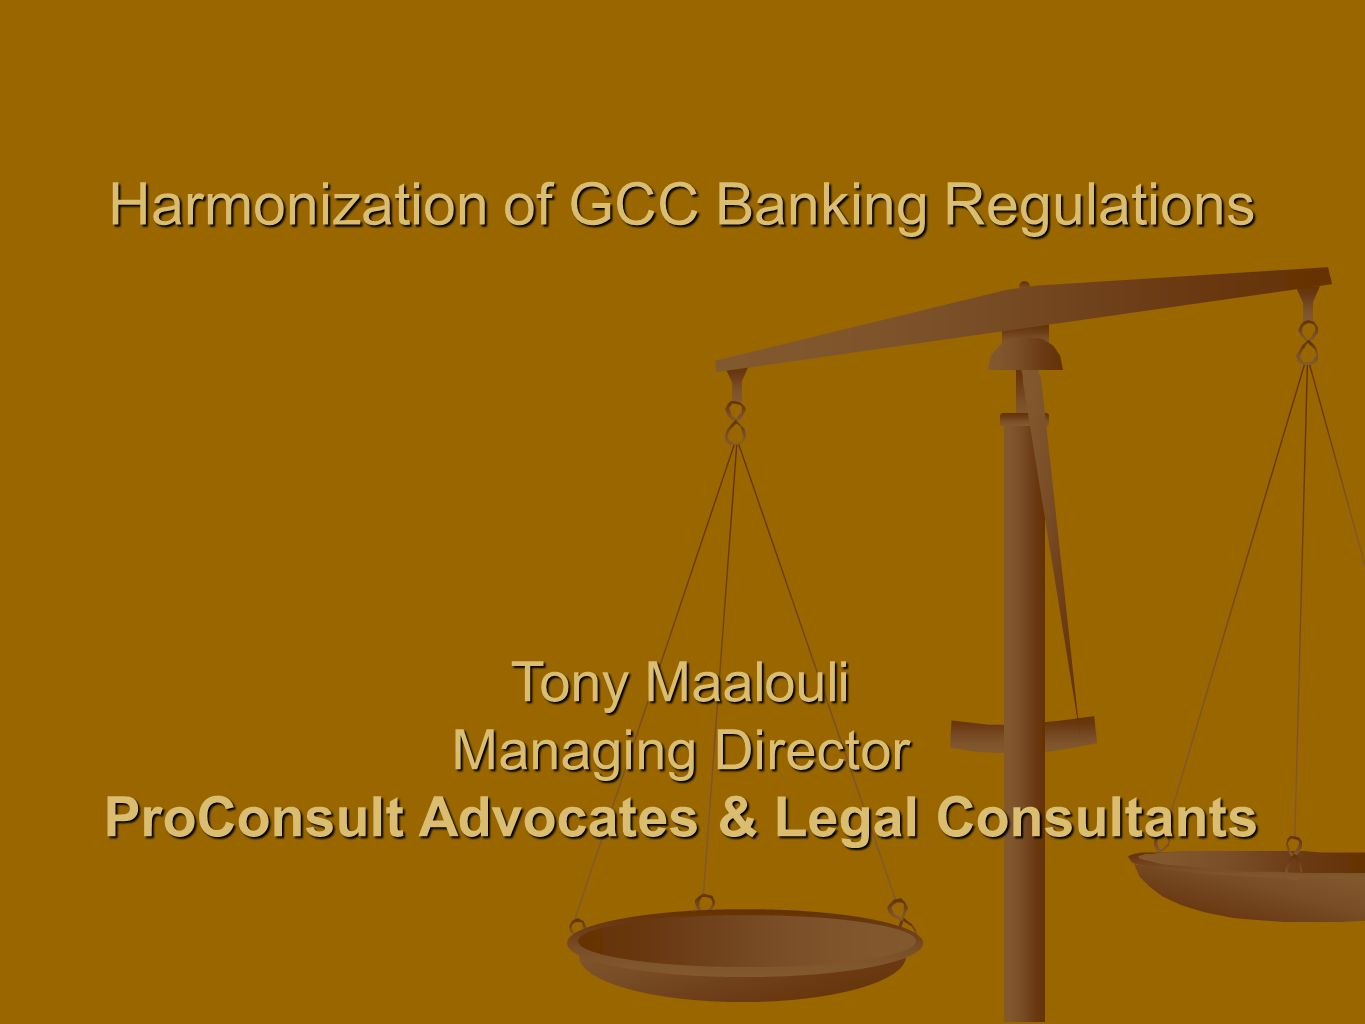 Harmonization of GCC Banking Regulations Tony Maalouli Managing Director ProConsult Advocates & Legal Consultants